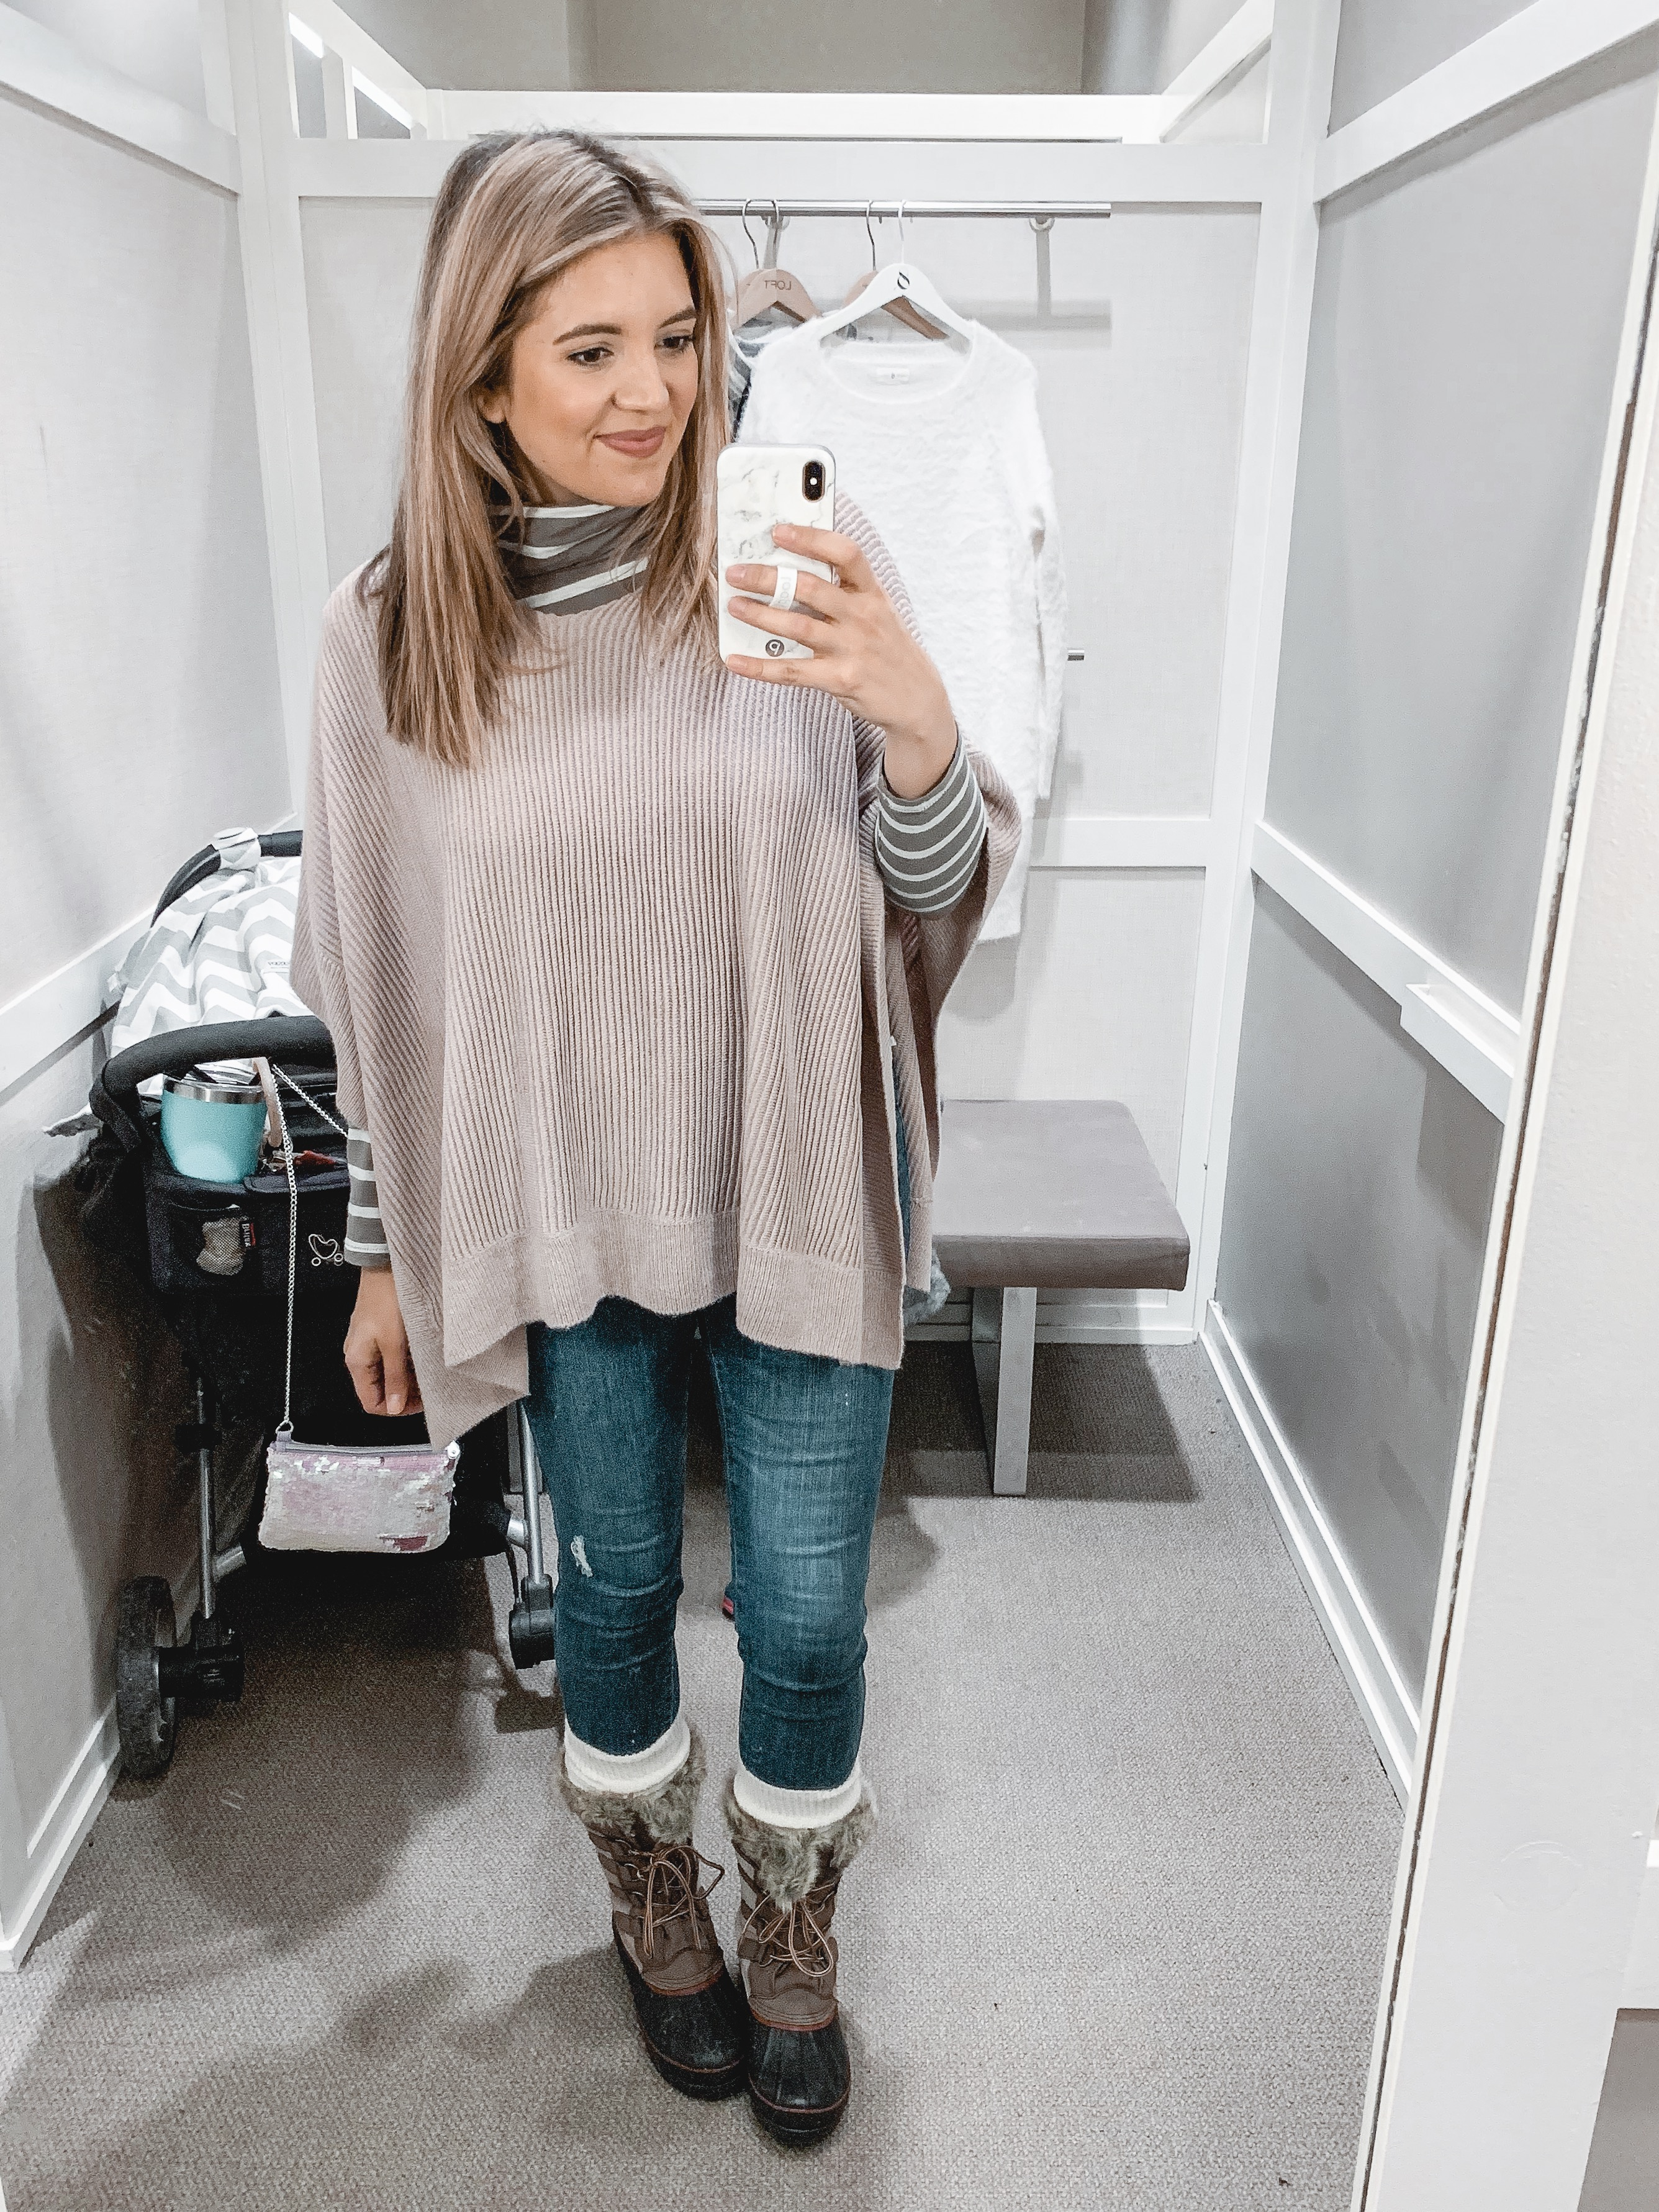 December Loft try-on holiday looks and cute winter outfits from Virginia style blogger Lauren Dix. | bylaurenm.com